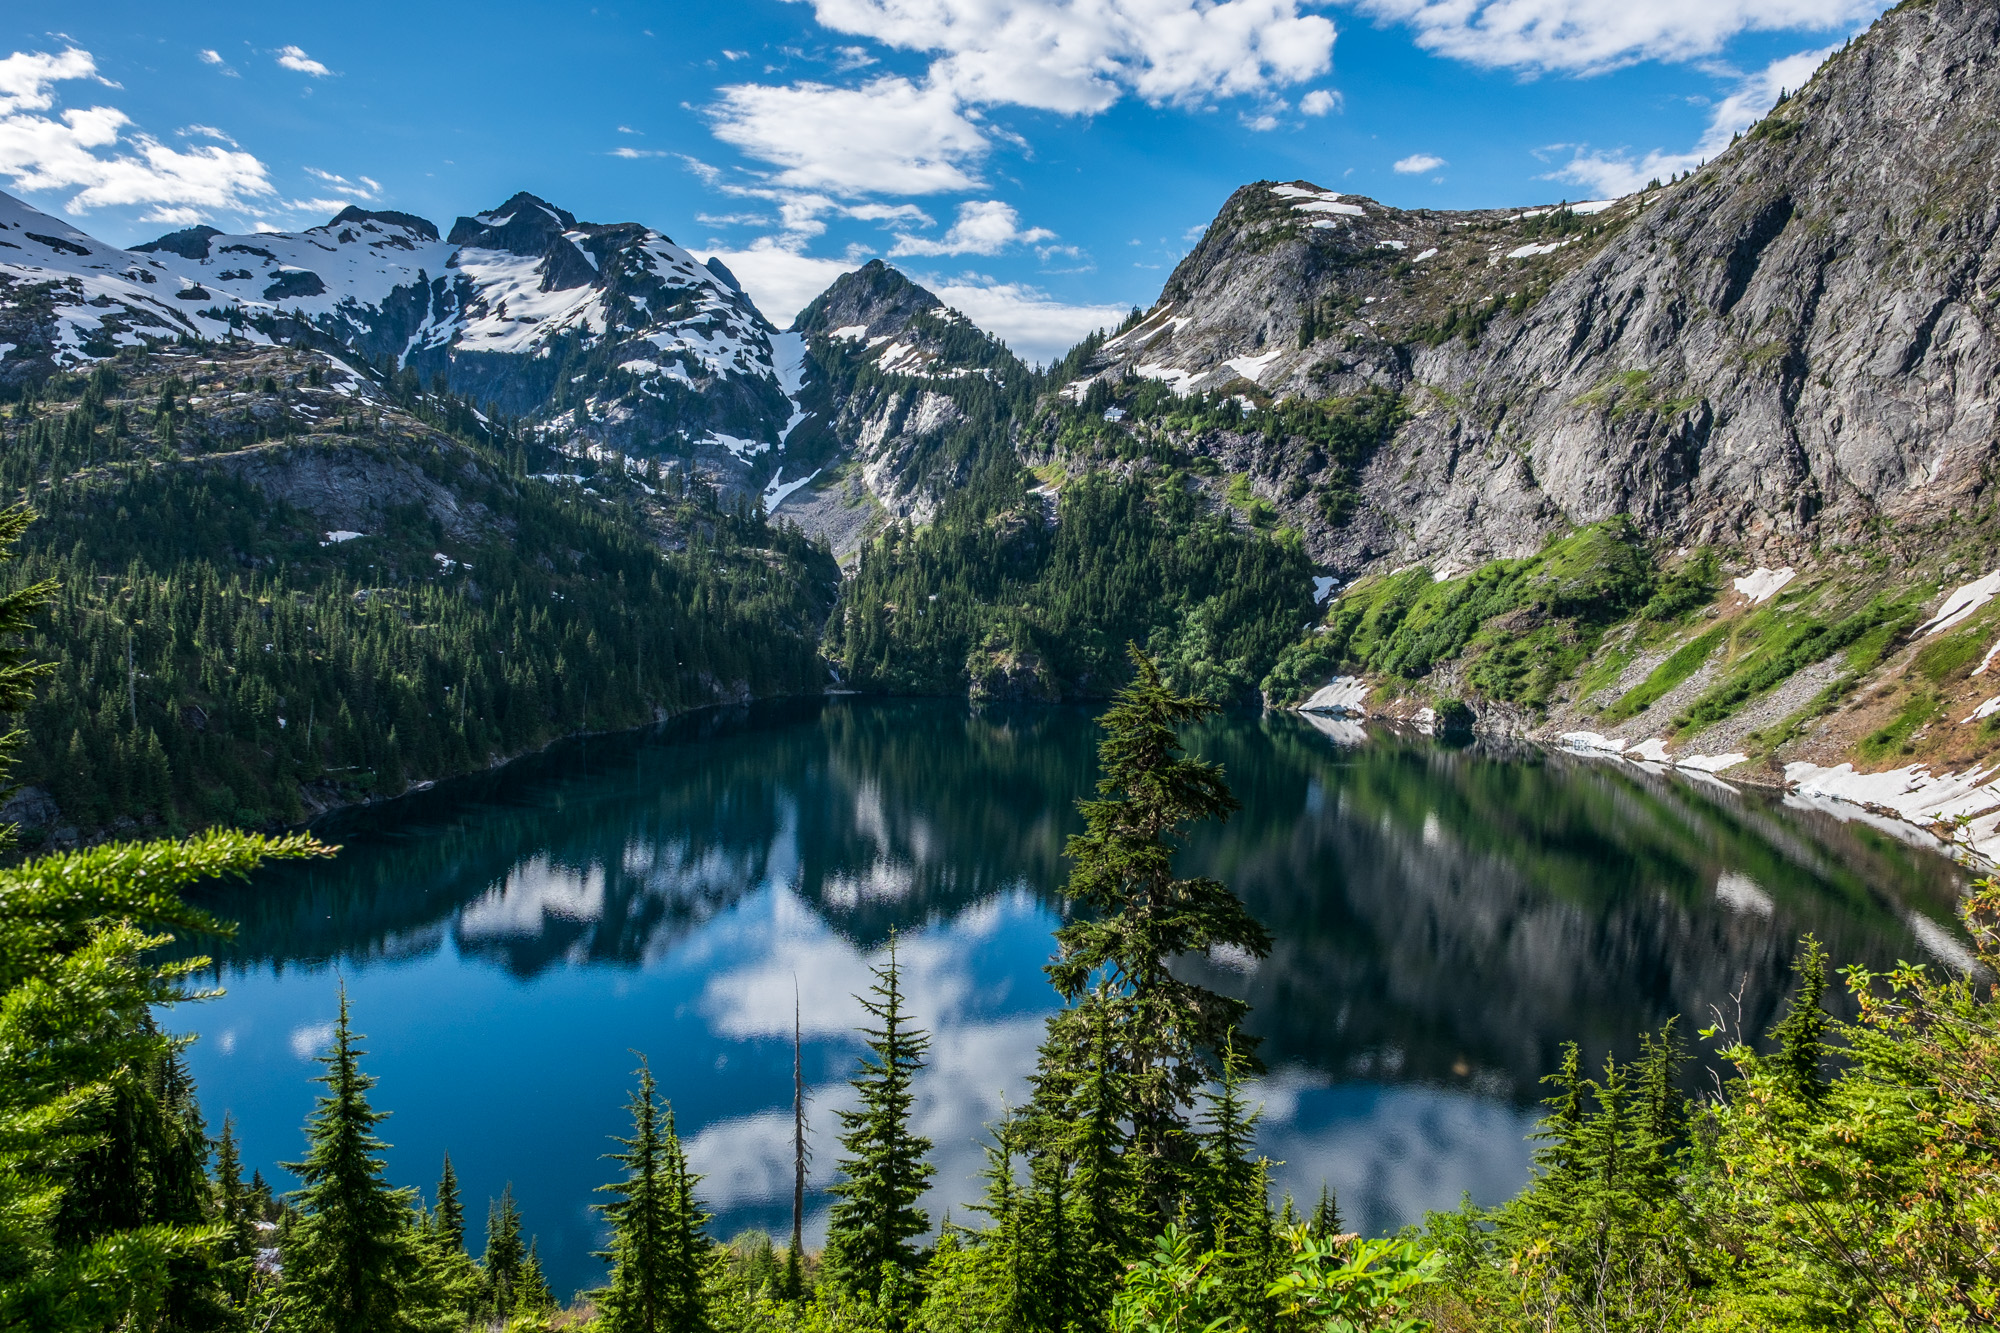 North Cascades National Park — The Greatest American Road Trip